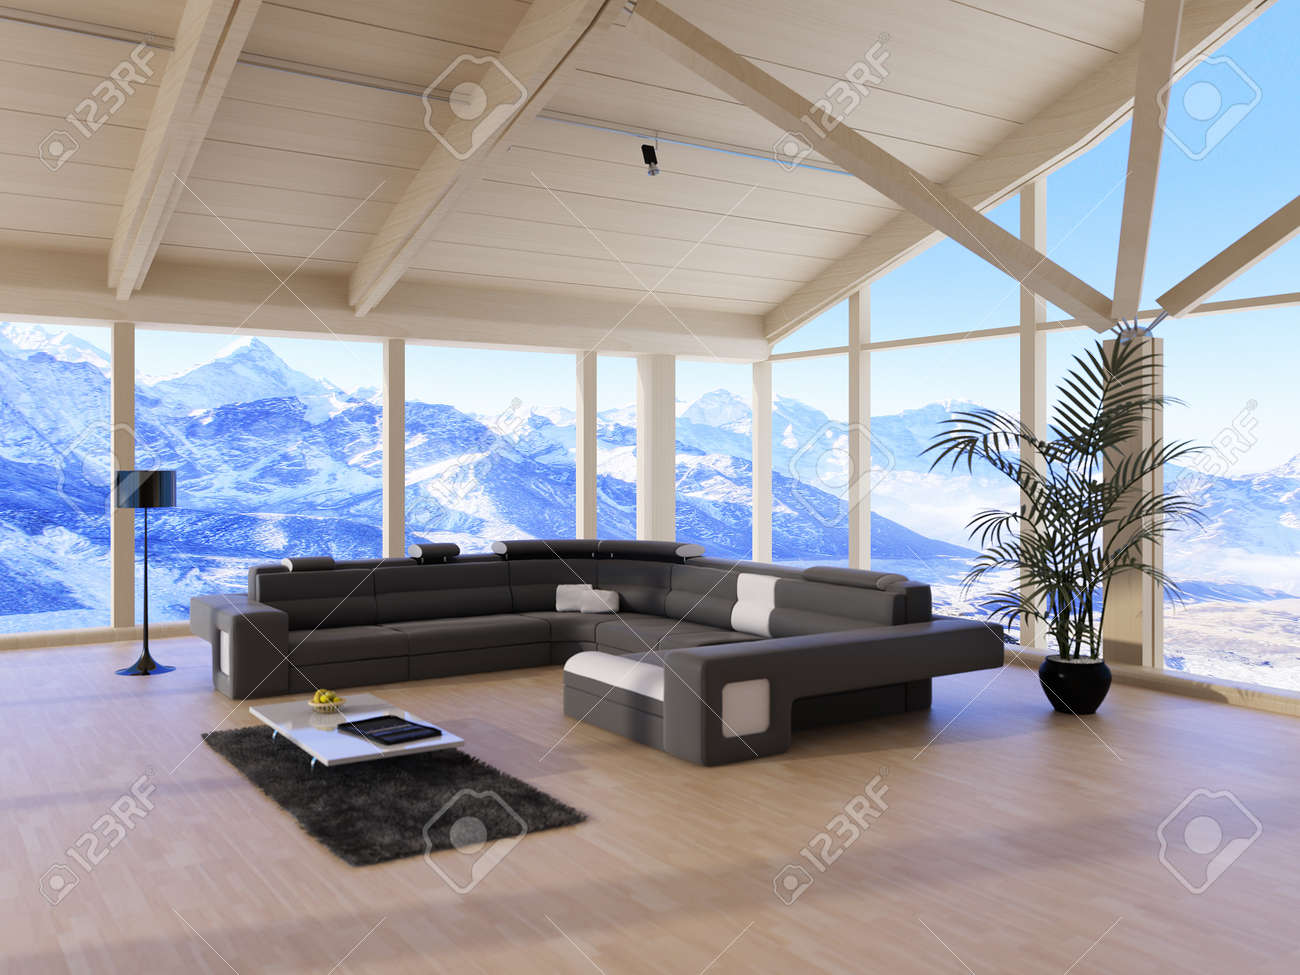 Modern loft living room - Modern Loft Living Room With Black Couch And Mountain Range View Stock Photo 32227605